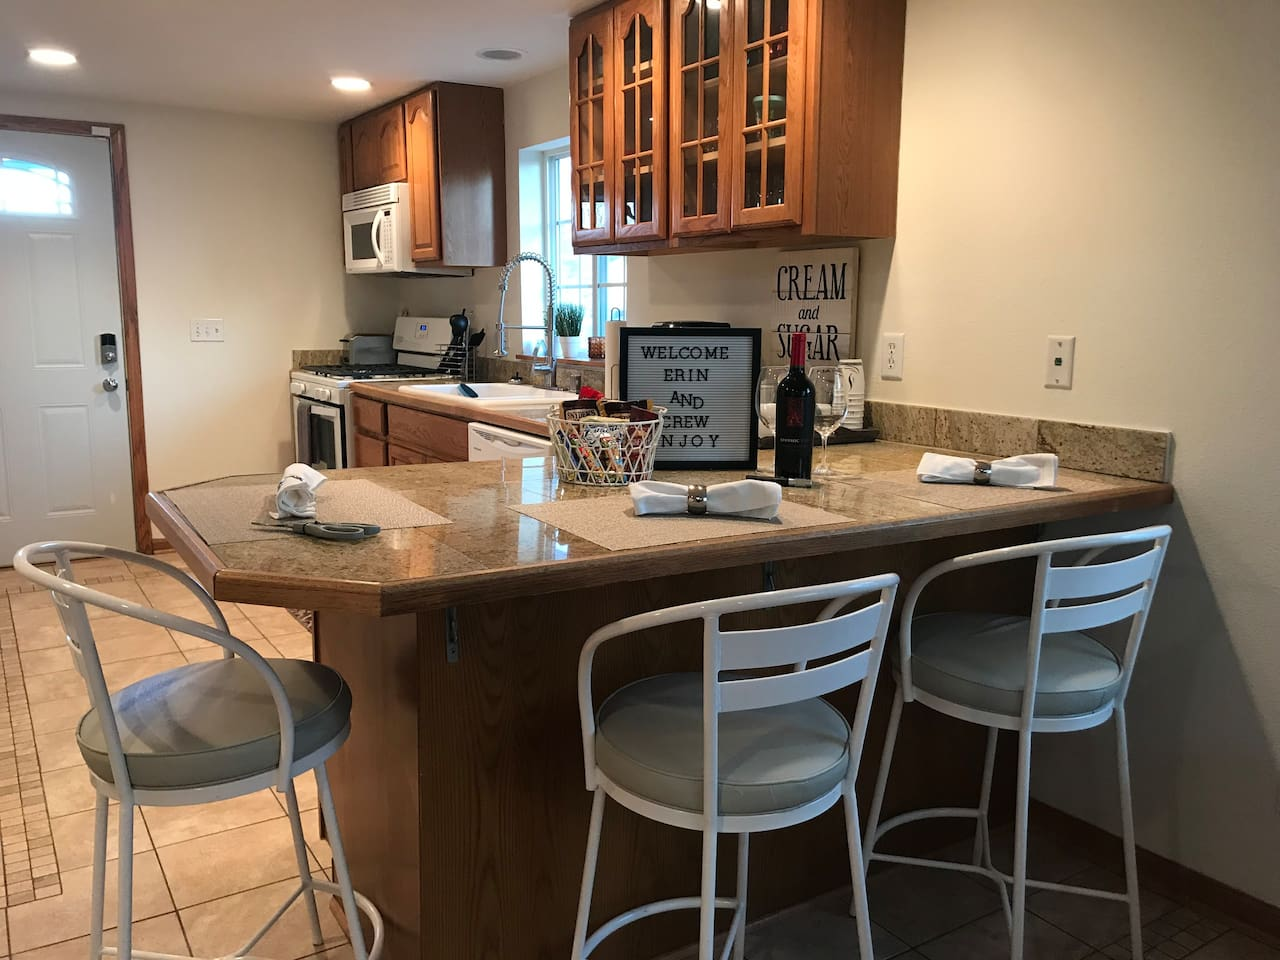 Beautifully refurbished home with newer kitchen and new appliances!